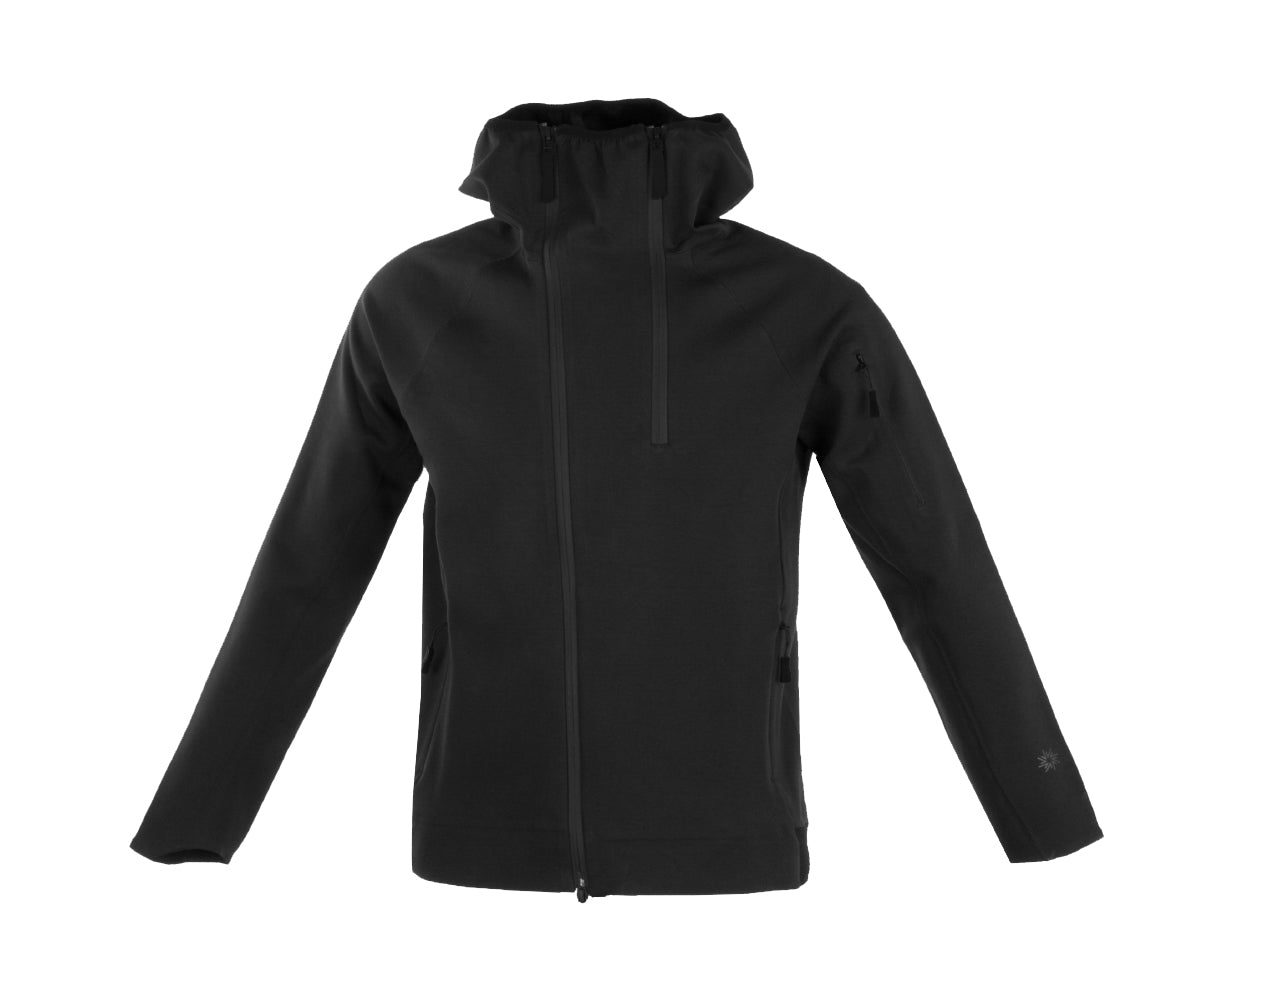 SCUBA HOODED JACKET V2